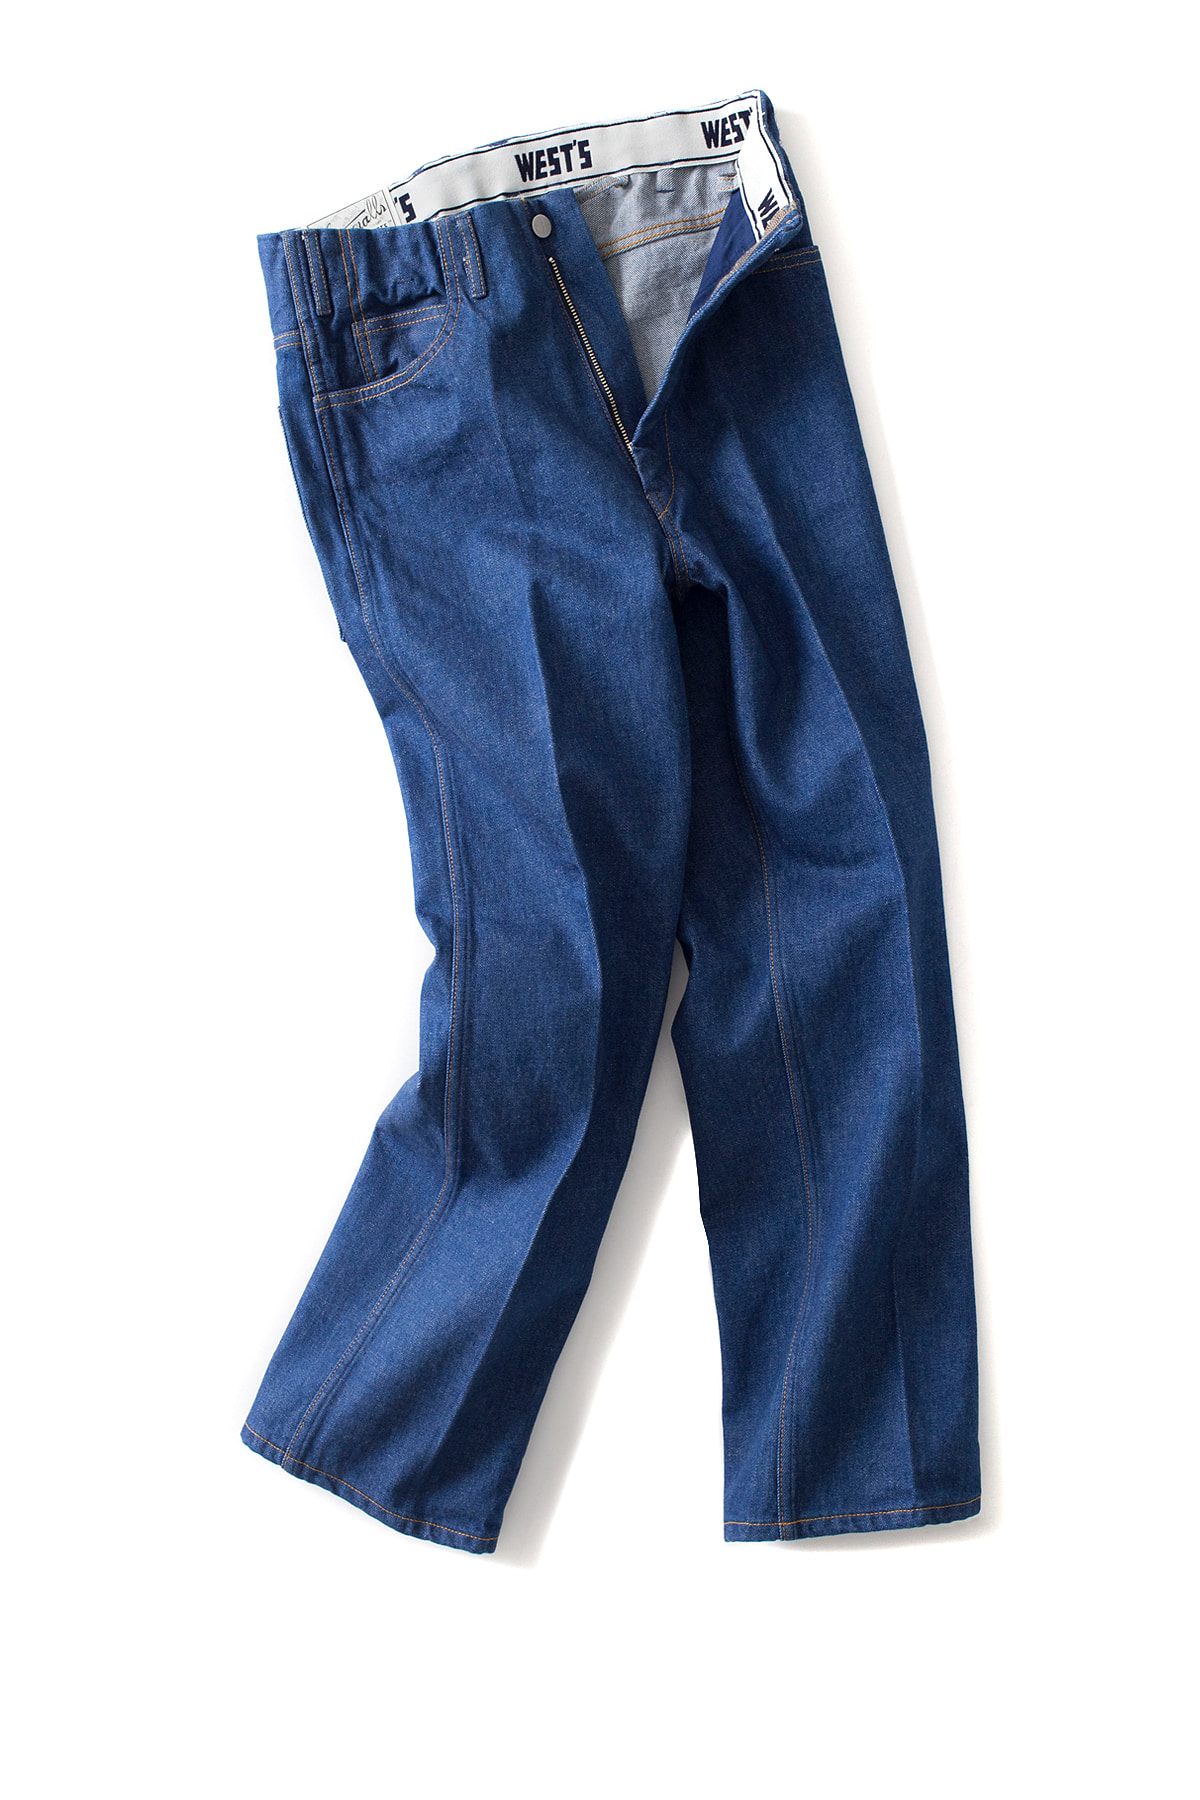 WESTOVERALLS : 817F (One Wash)